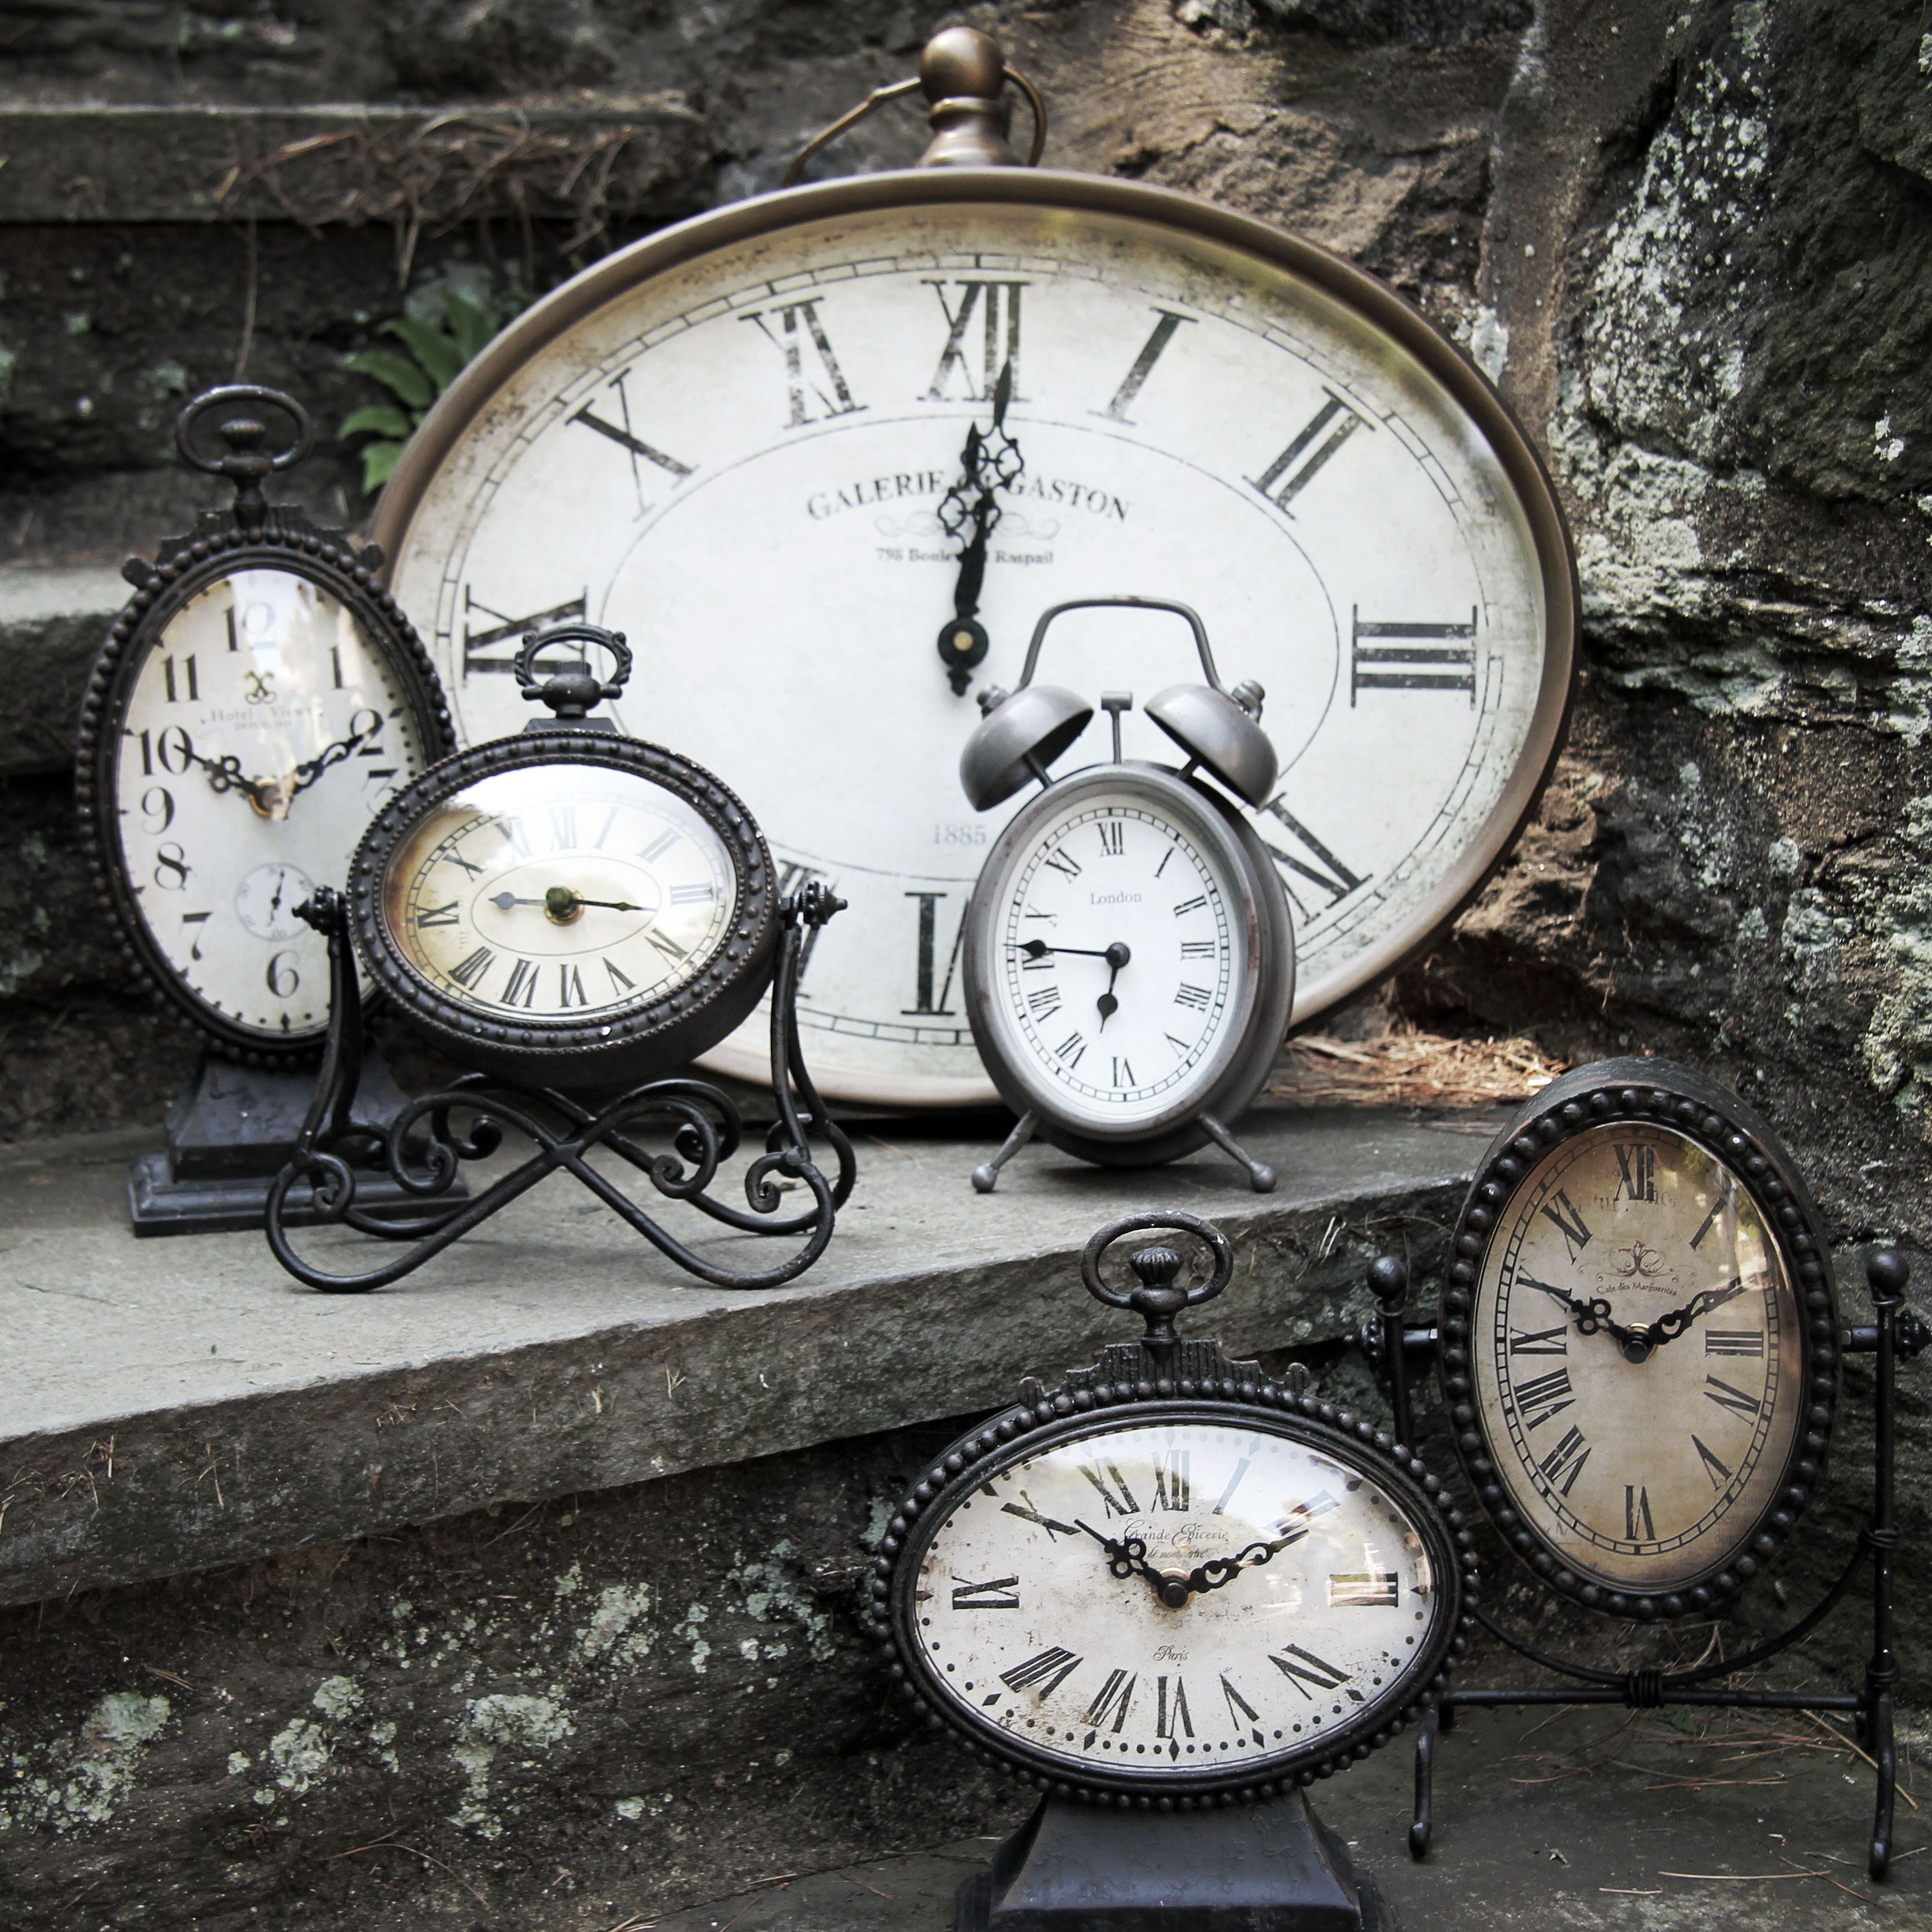 A Collection Of Vintageinspired Clocks Tick Tock  Pinterest Best Small Wall Clock For Bathroom Design Ideas